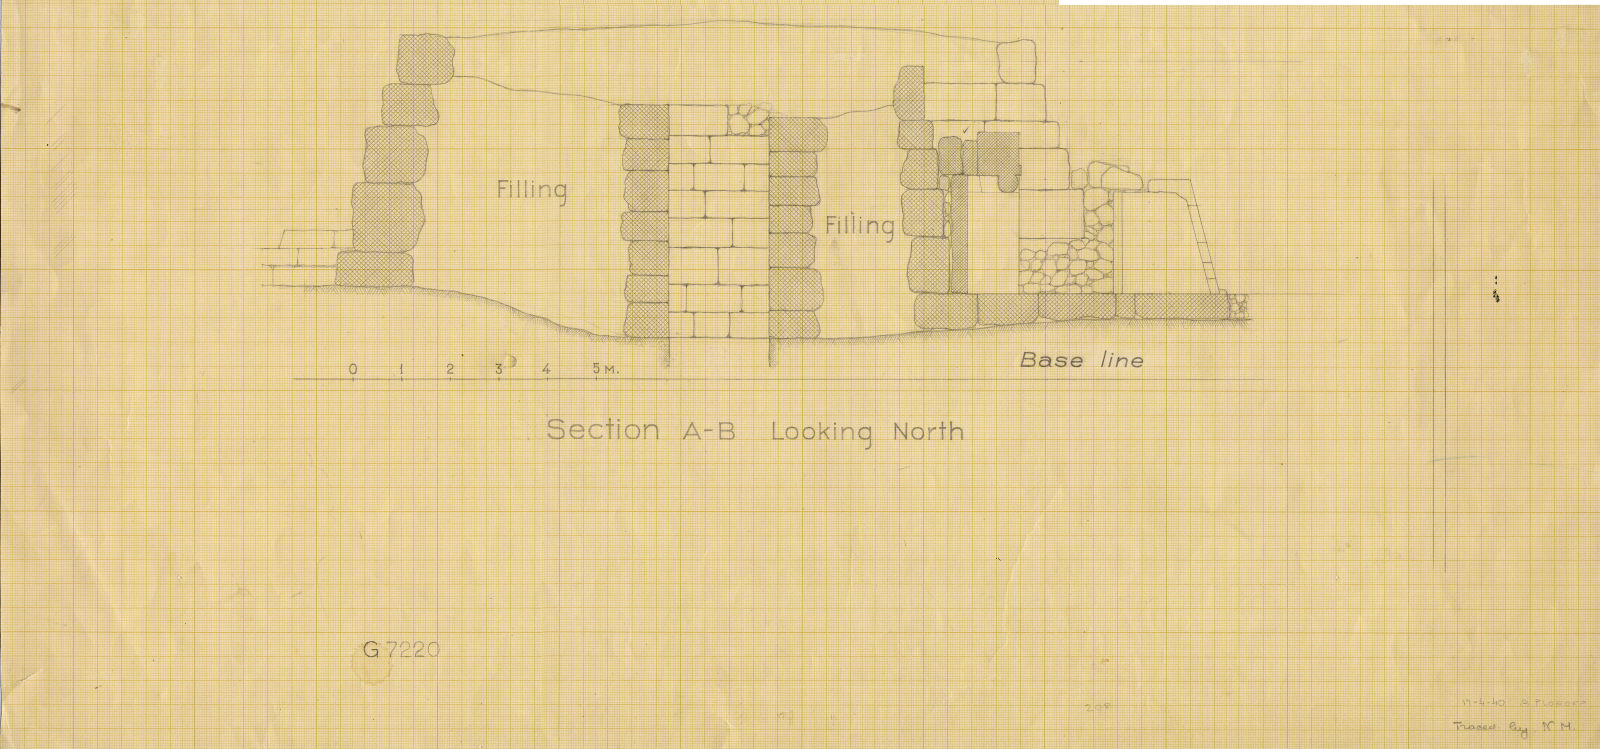 Maps and plans: Section of G 7220